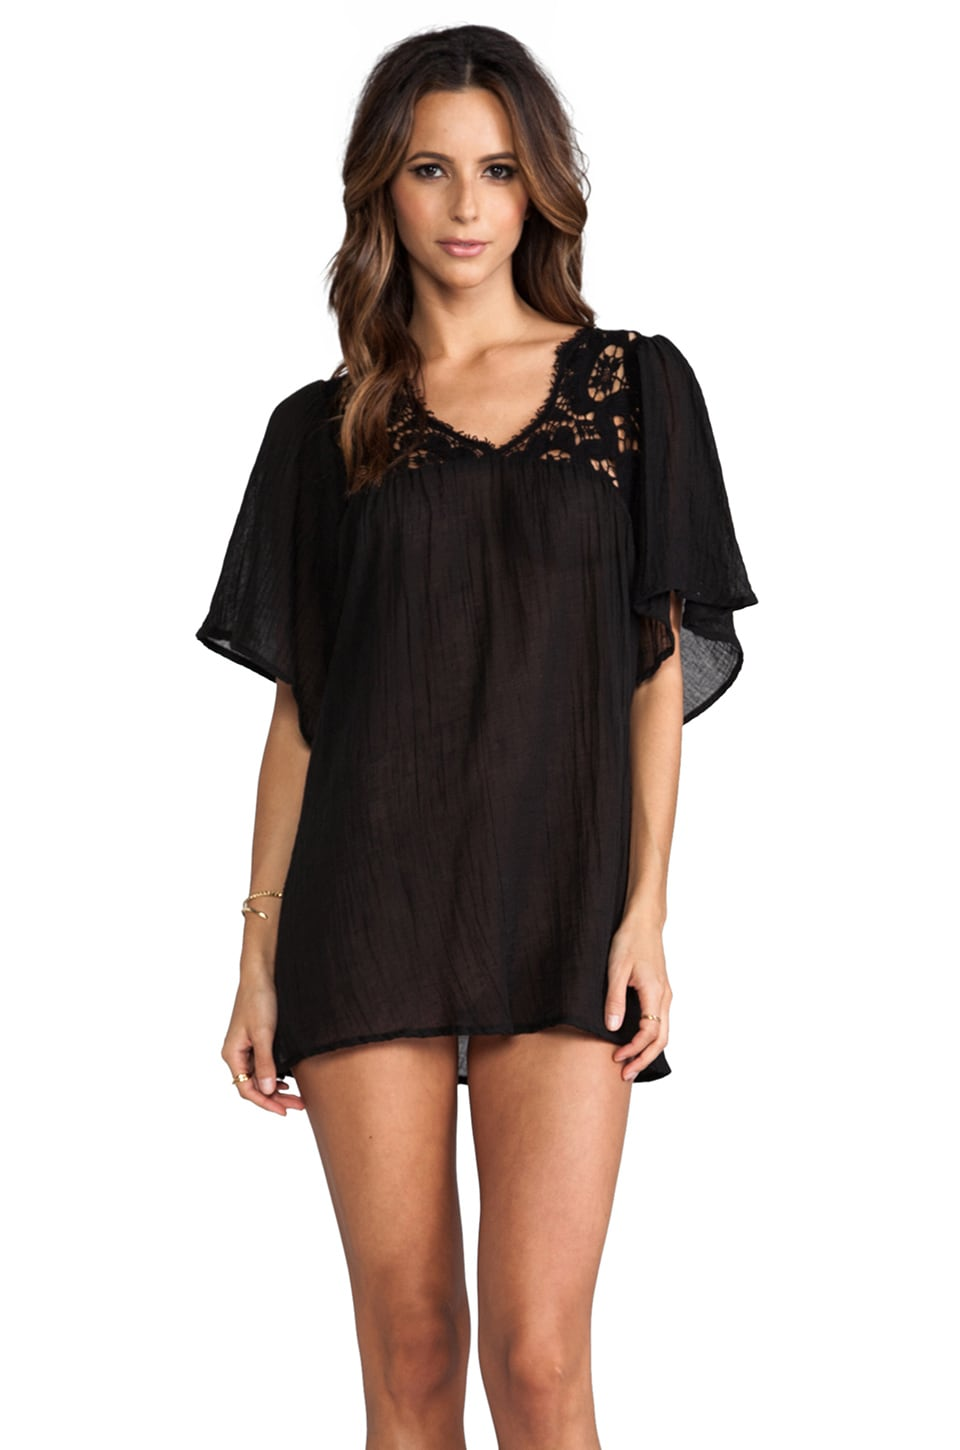 eberjey Anabelle Tunic in Black